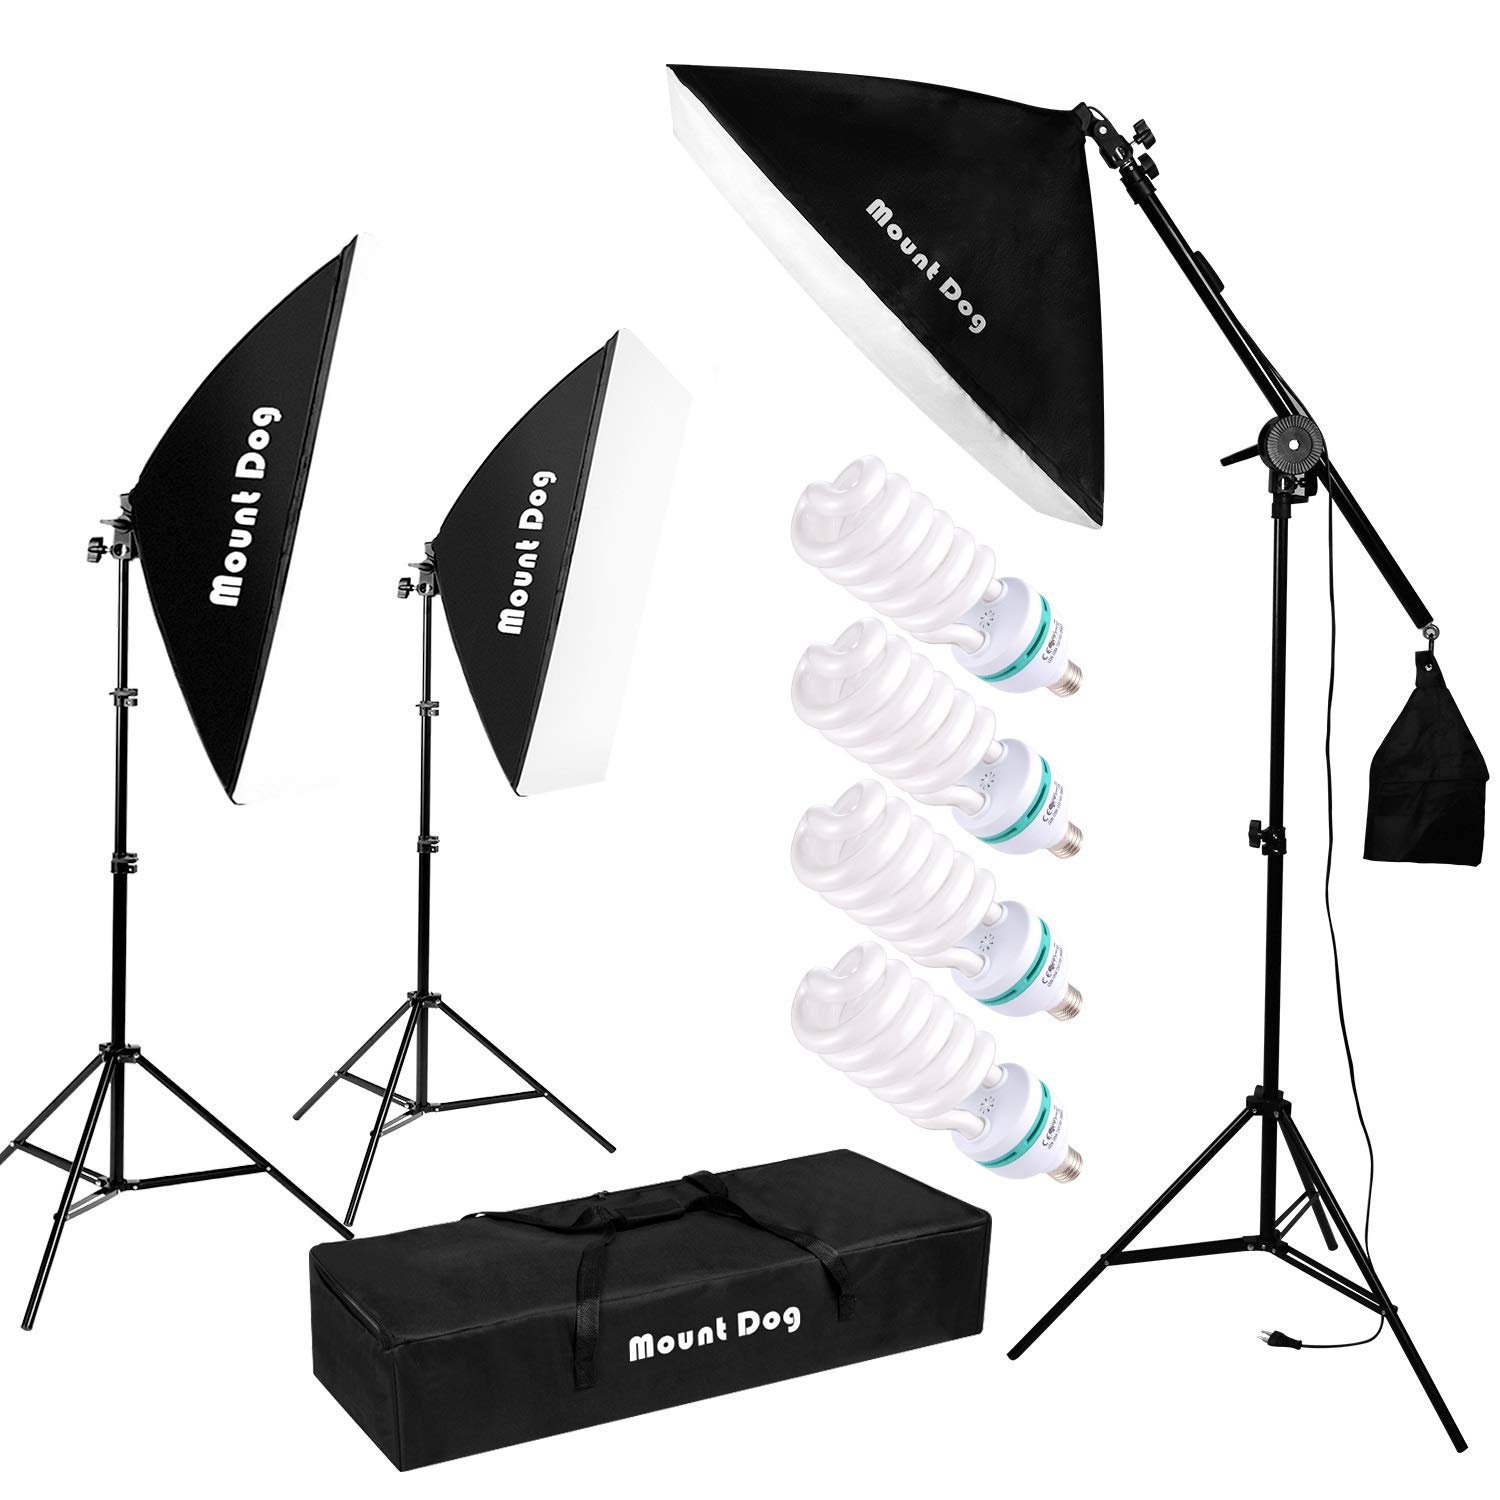 MOUNTDOG 1350W Photography Studio Softbox Lighting Kit with 4 X 5500K Bulbs Arm Holder Photo Video Continuous Soft Box Lighting Set for YouTube Filming Portrait Shooting by MOUNTDOG